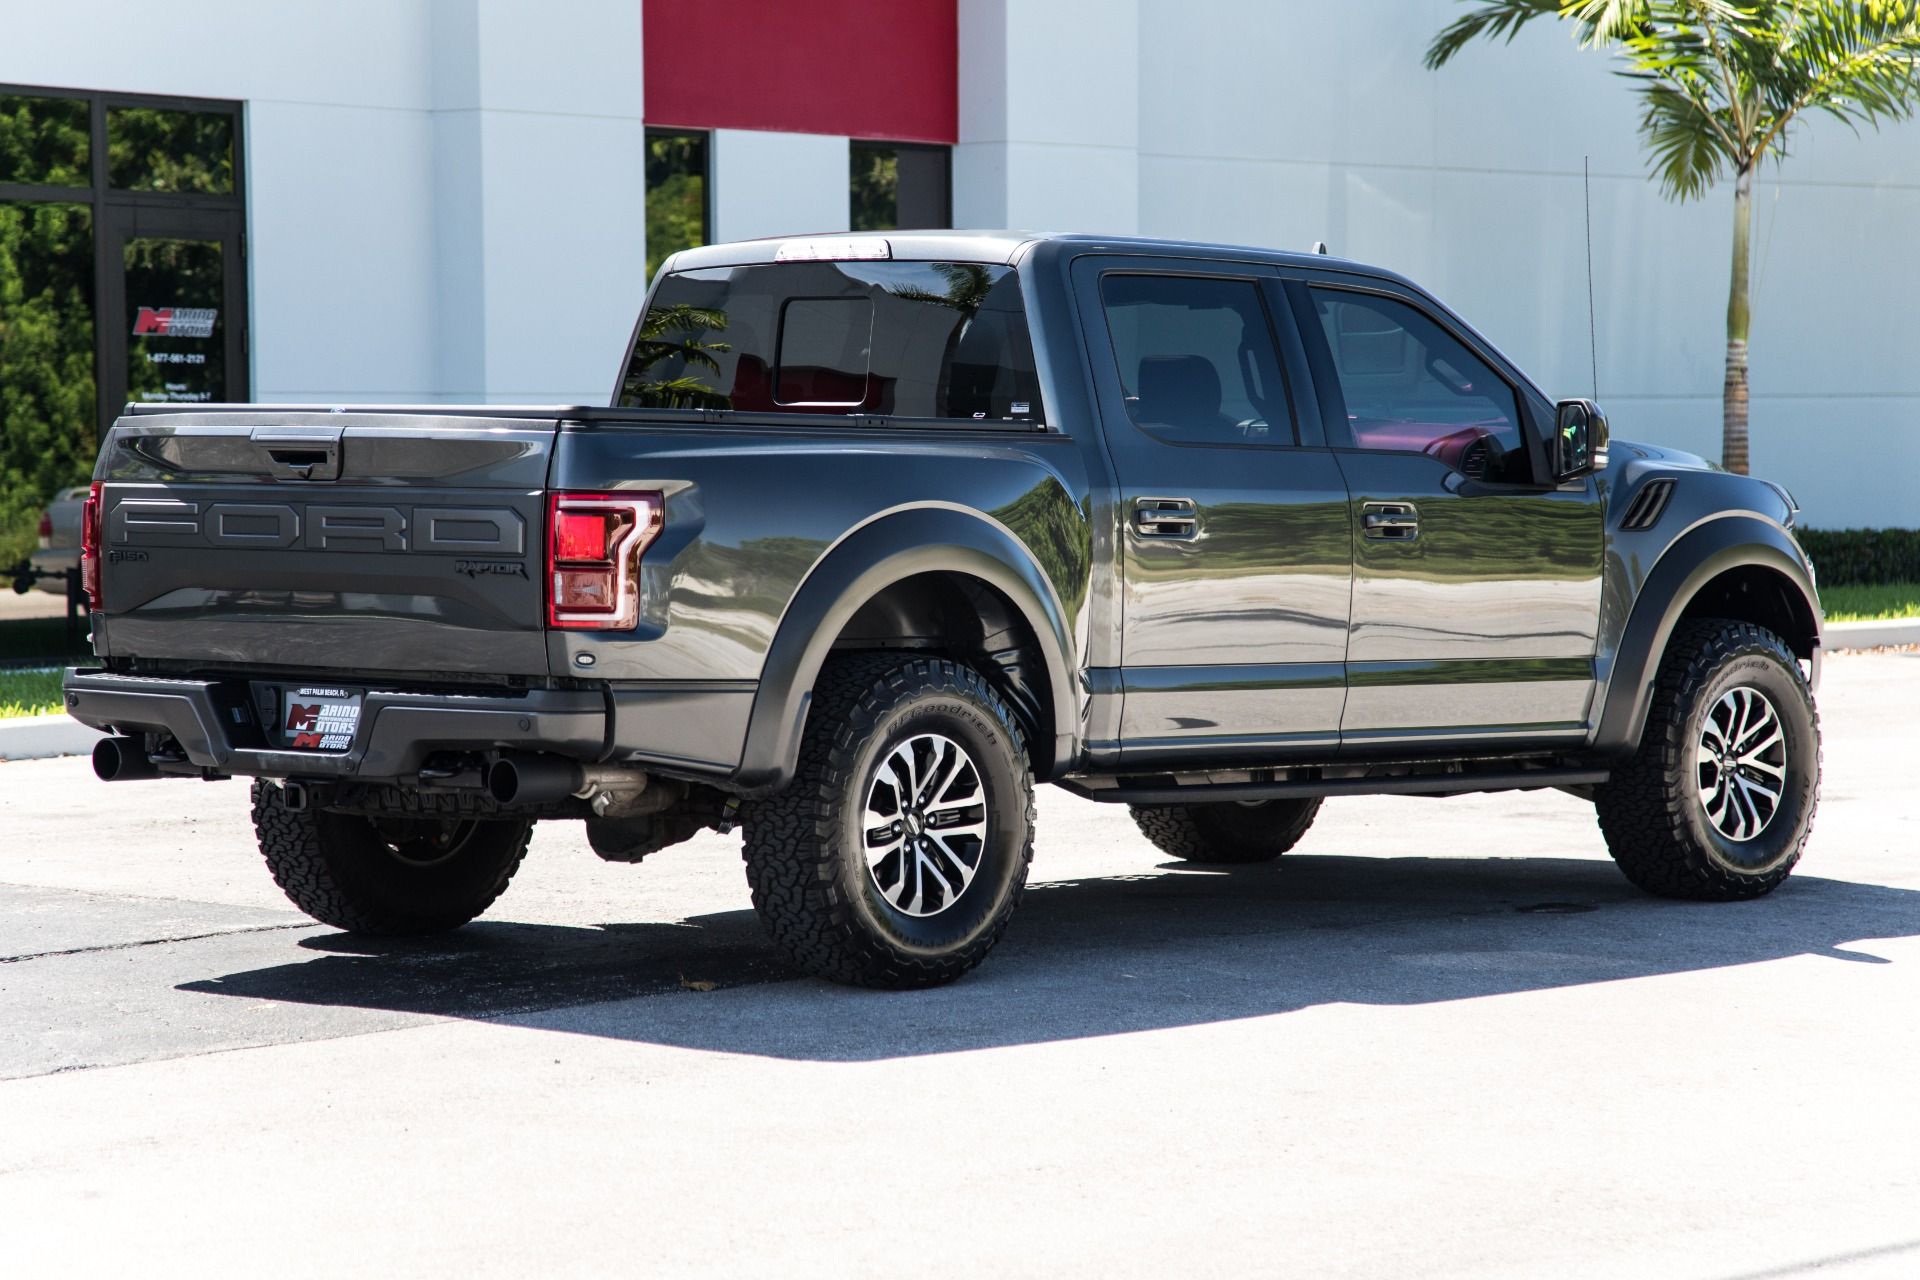 Used 2019 Ford F-150 Raptor For Sale ($67,900) | Marino ...